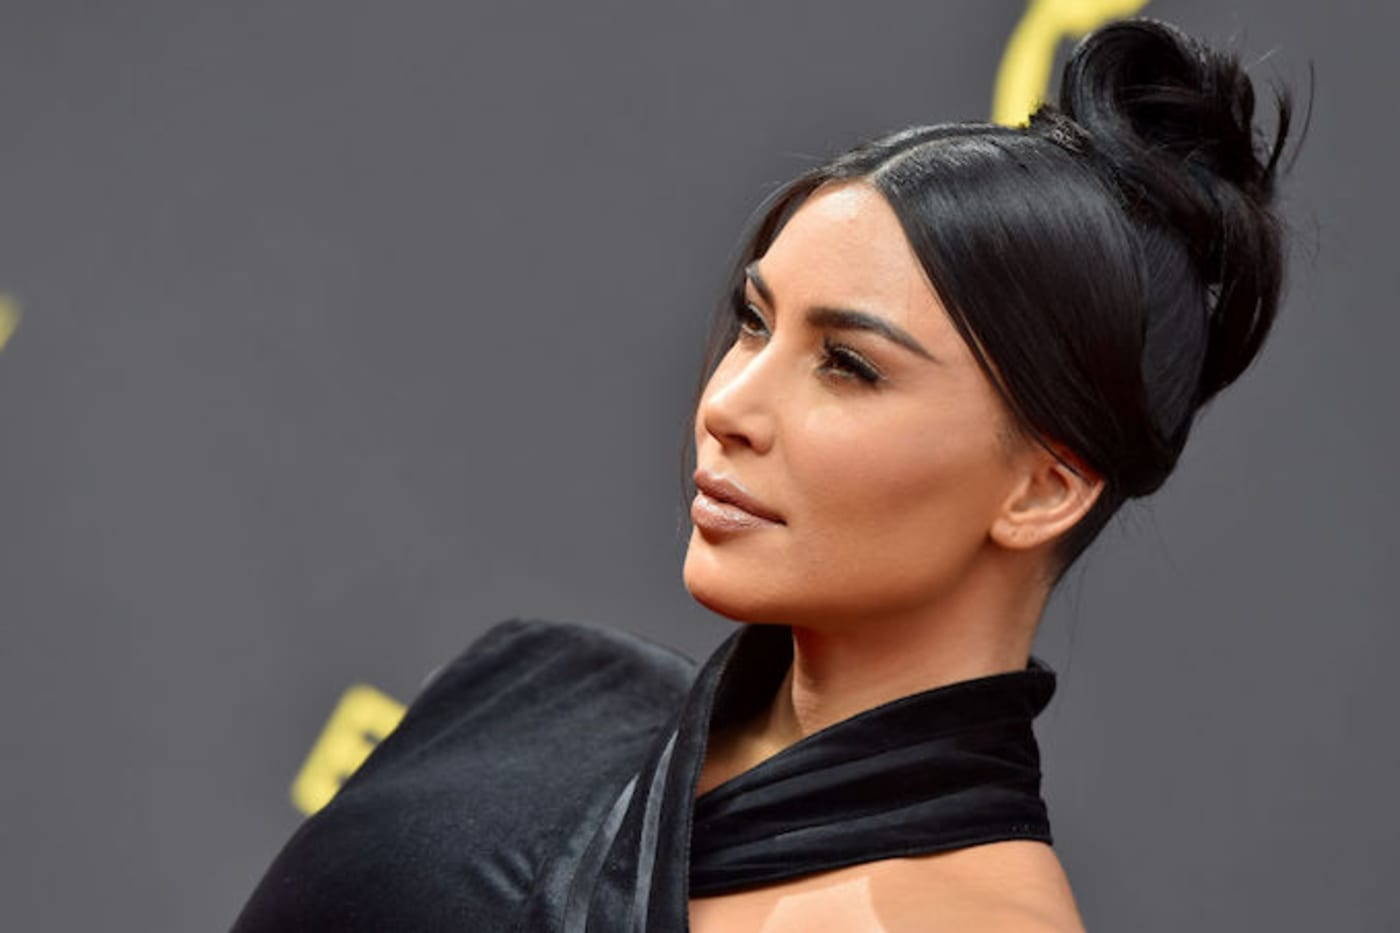 This is a picture of Kim K.